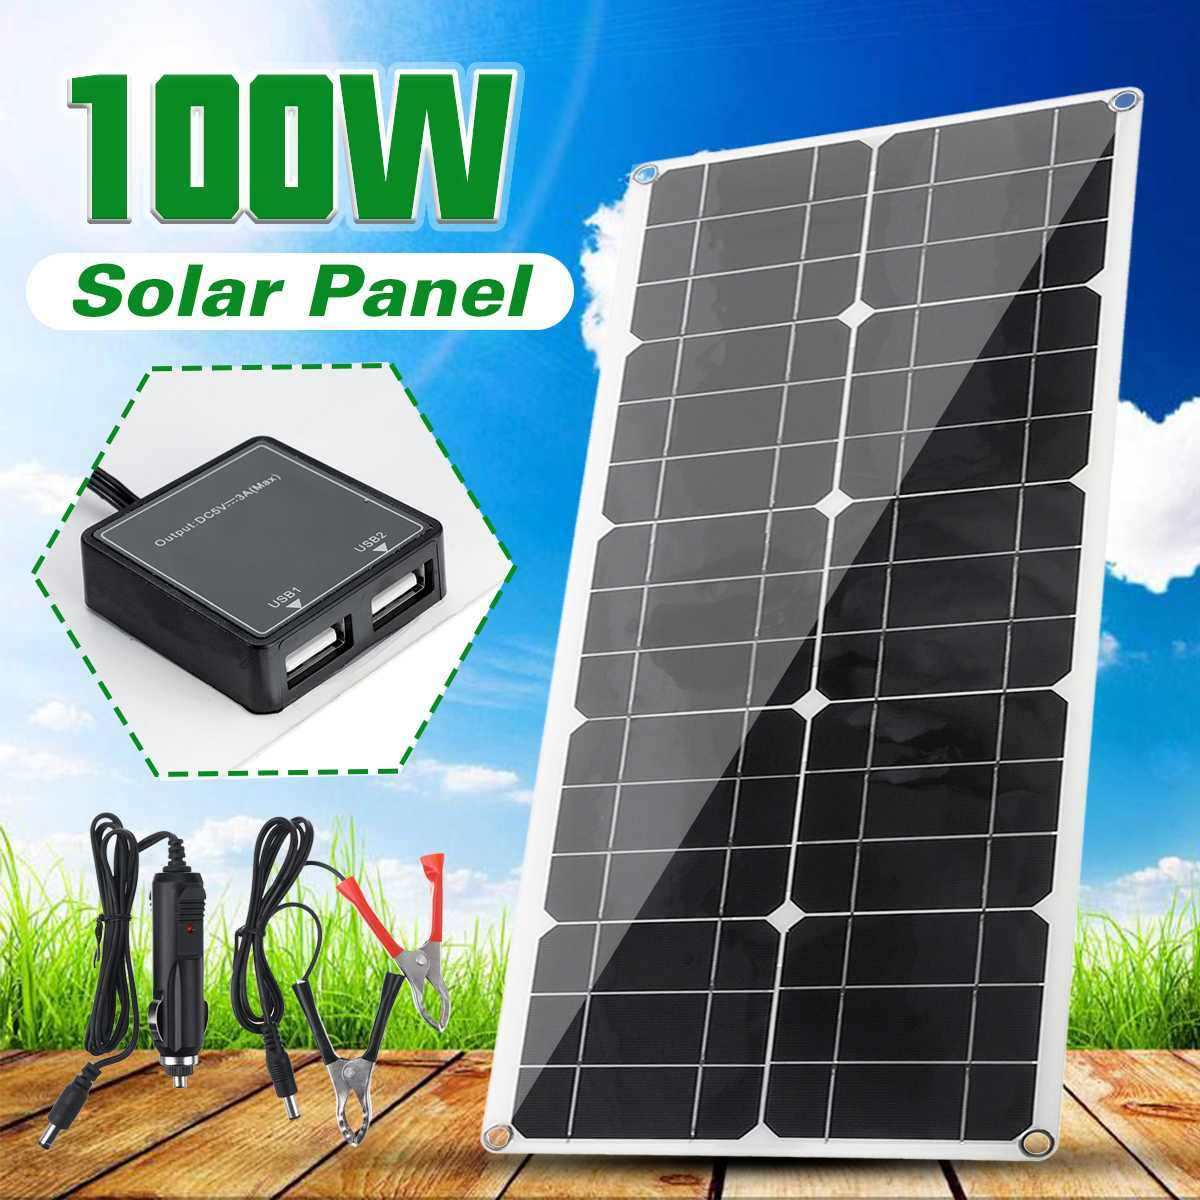 2Pcs 100W Solar Panel Flexible MonoCrystalline Silicon Solar Panel for Outdoor Cycling, Climbing, Hiking, Camping, Solar Battery